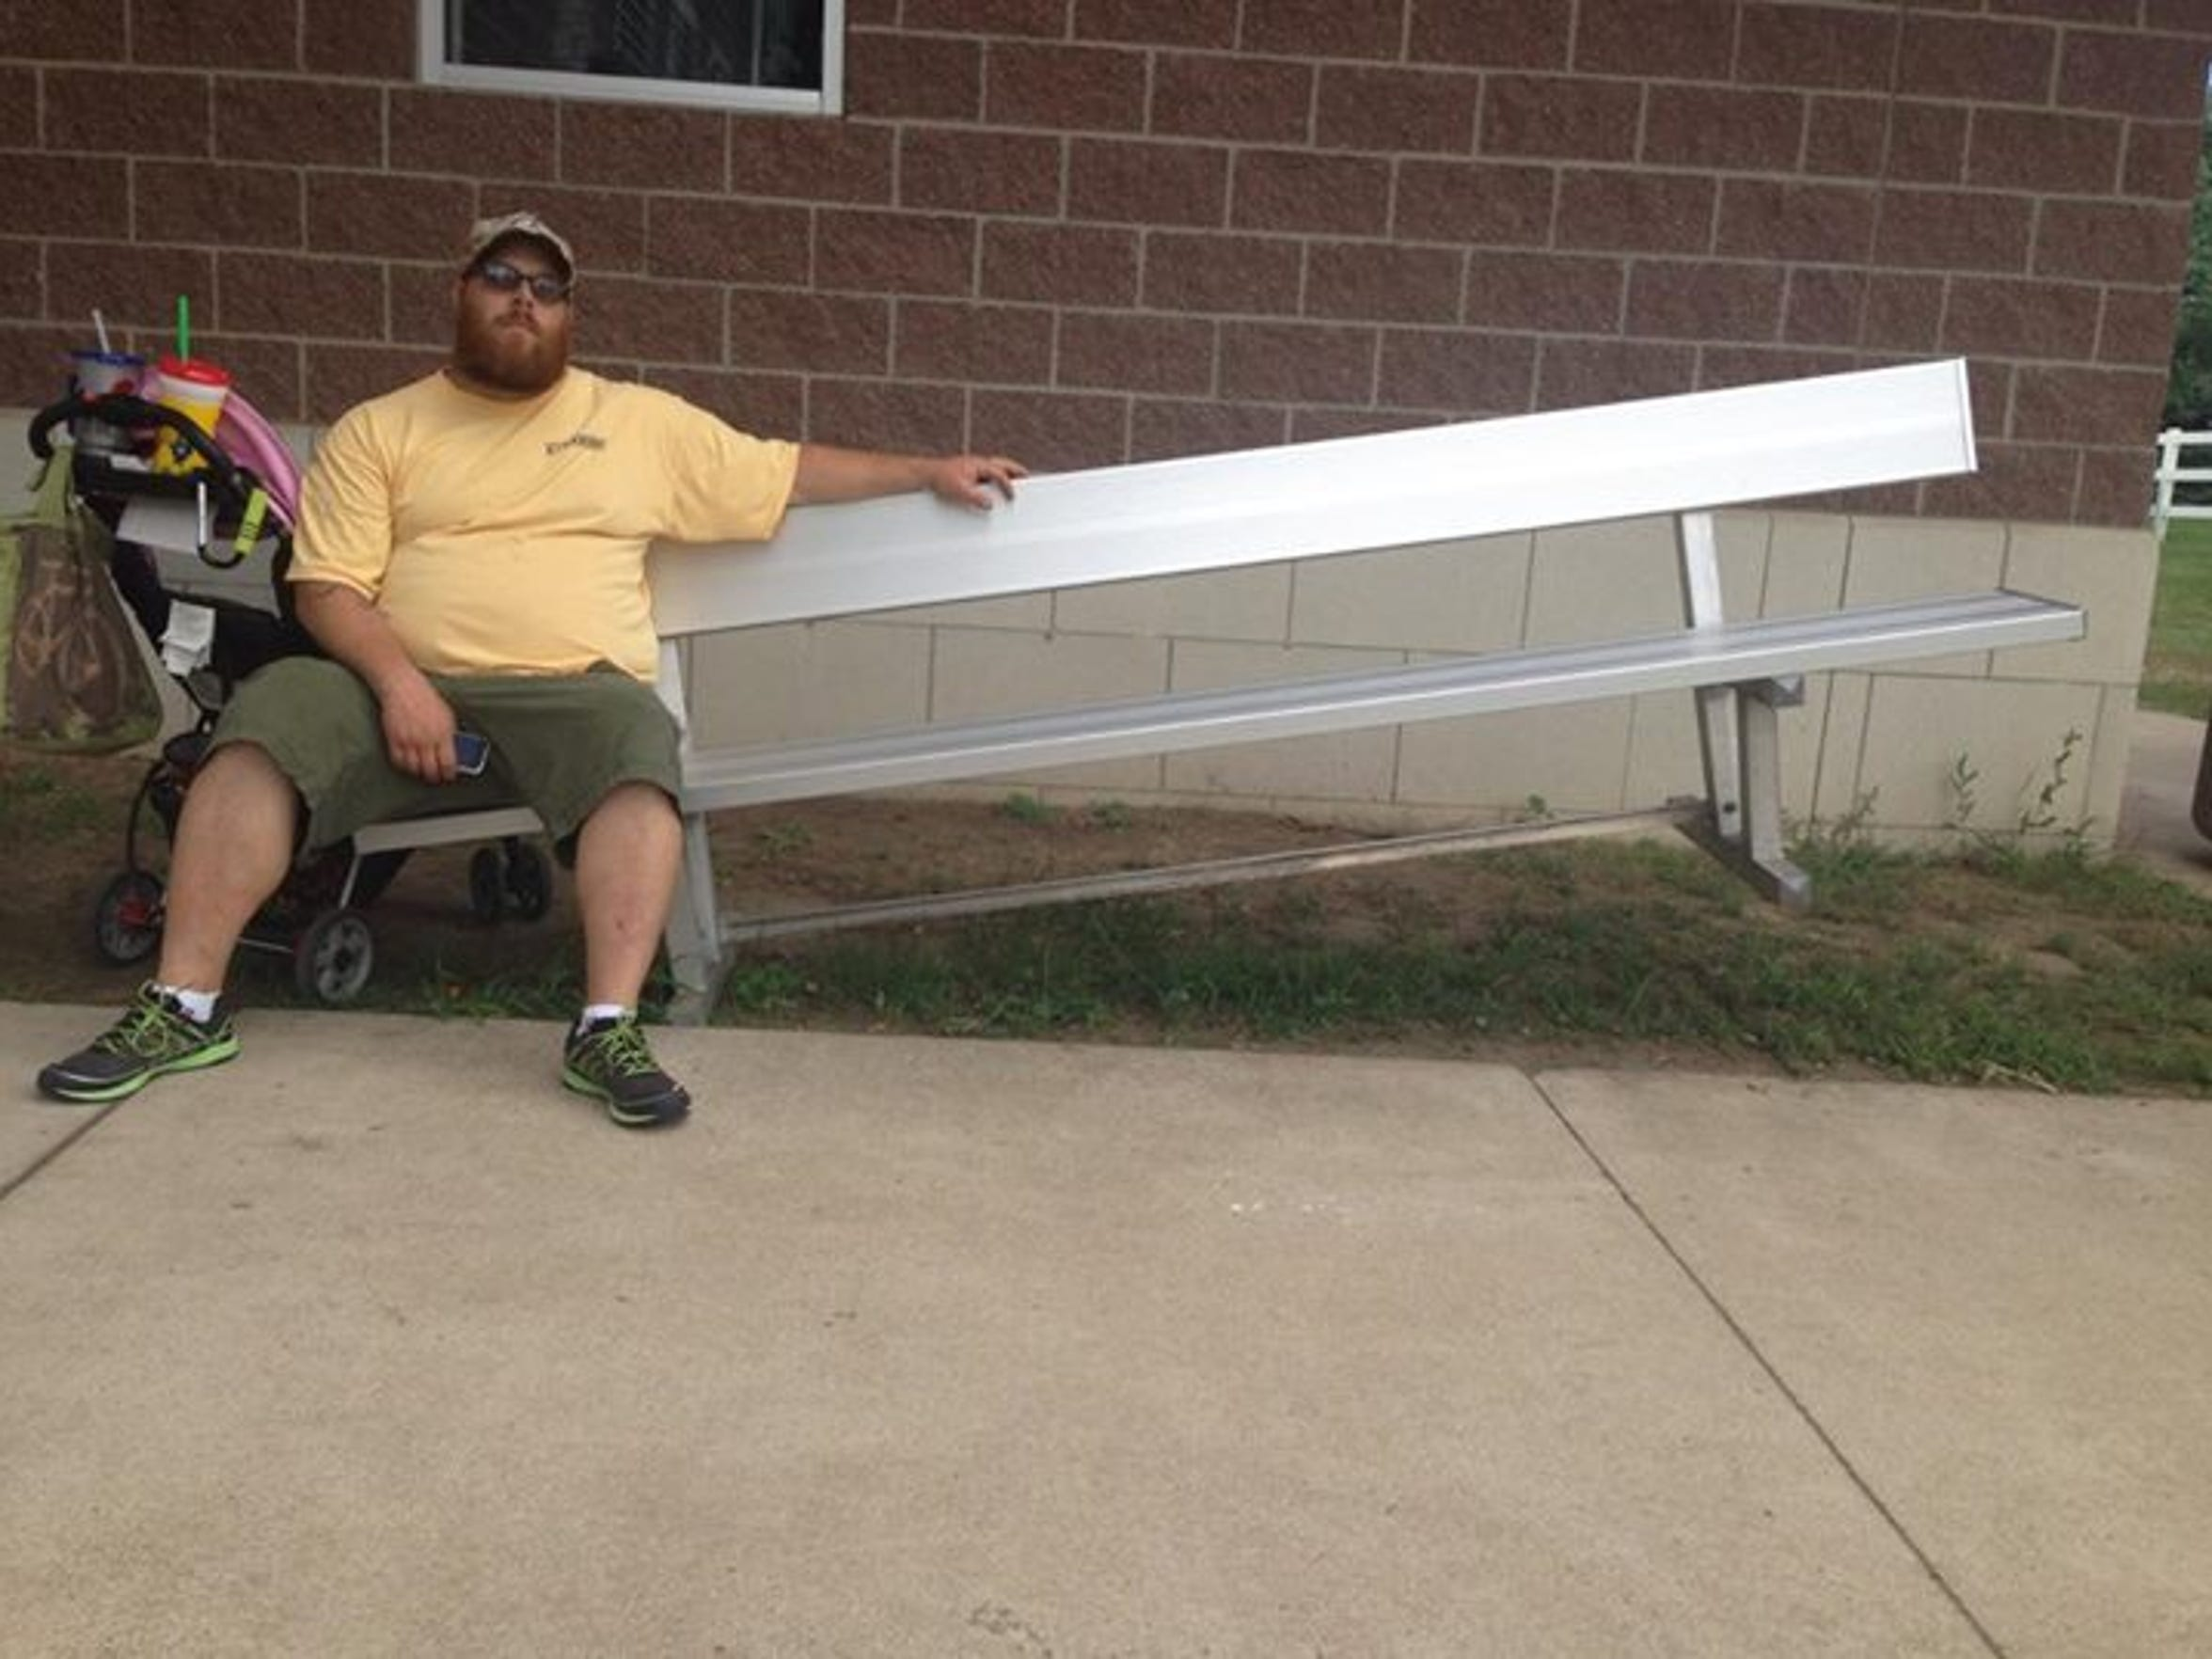 """The comments on the """"The People of the Iowa State Fair"""" page indicated that the man sitting on the bench himself suggested the photo."""